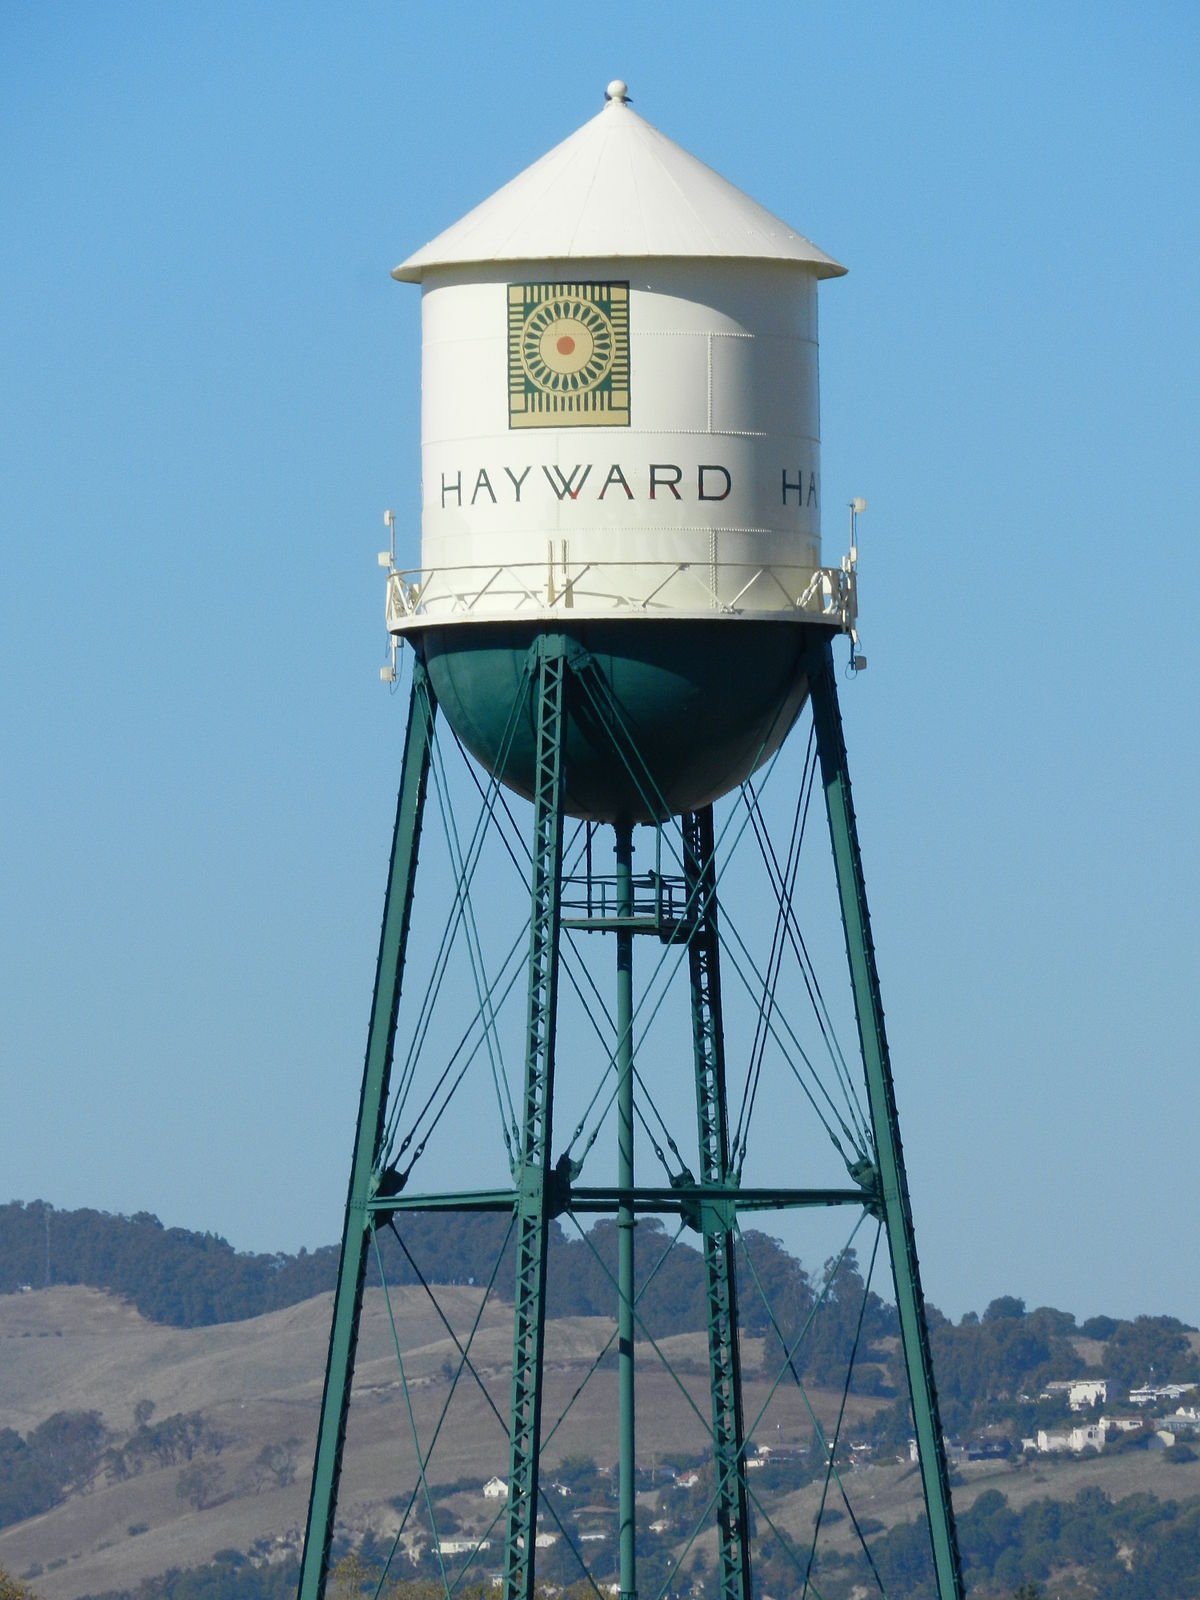 Water Tower Homes Hayward Real Estate Search All Fremont Homes Condos Townhouses